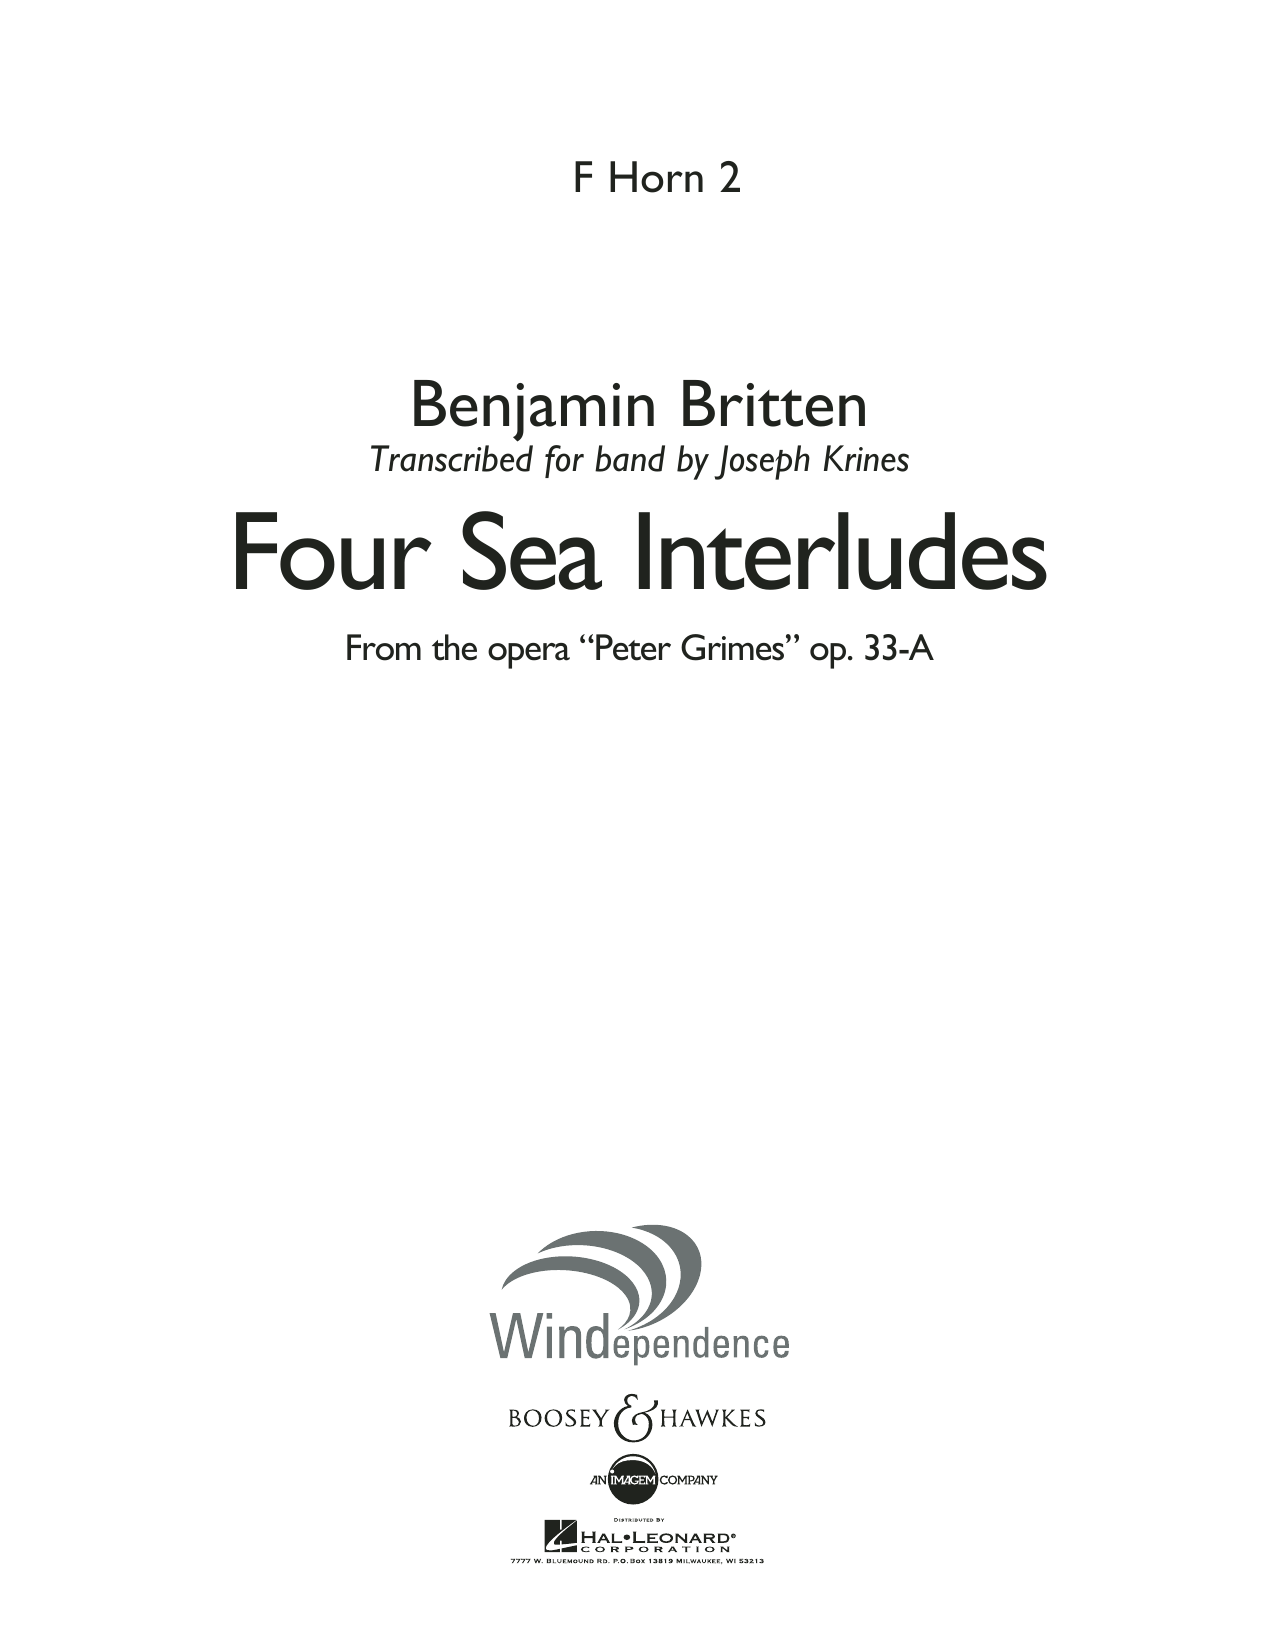 """Four Sea Interludes (from the opera """"Peter Grimes"""") - F Horn 2 (Concert Band)"""